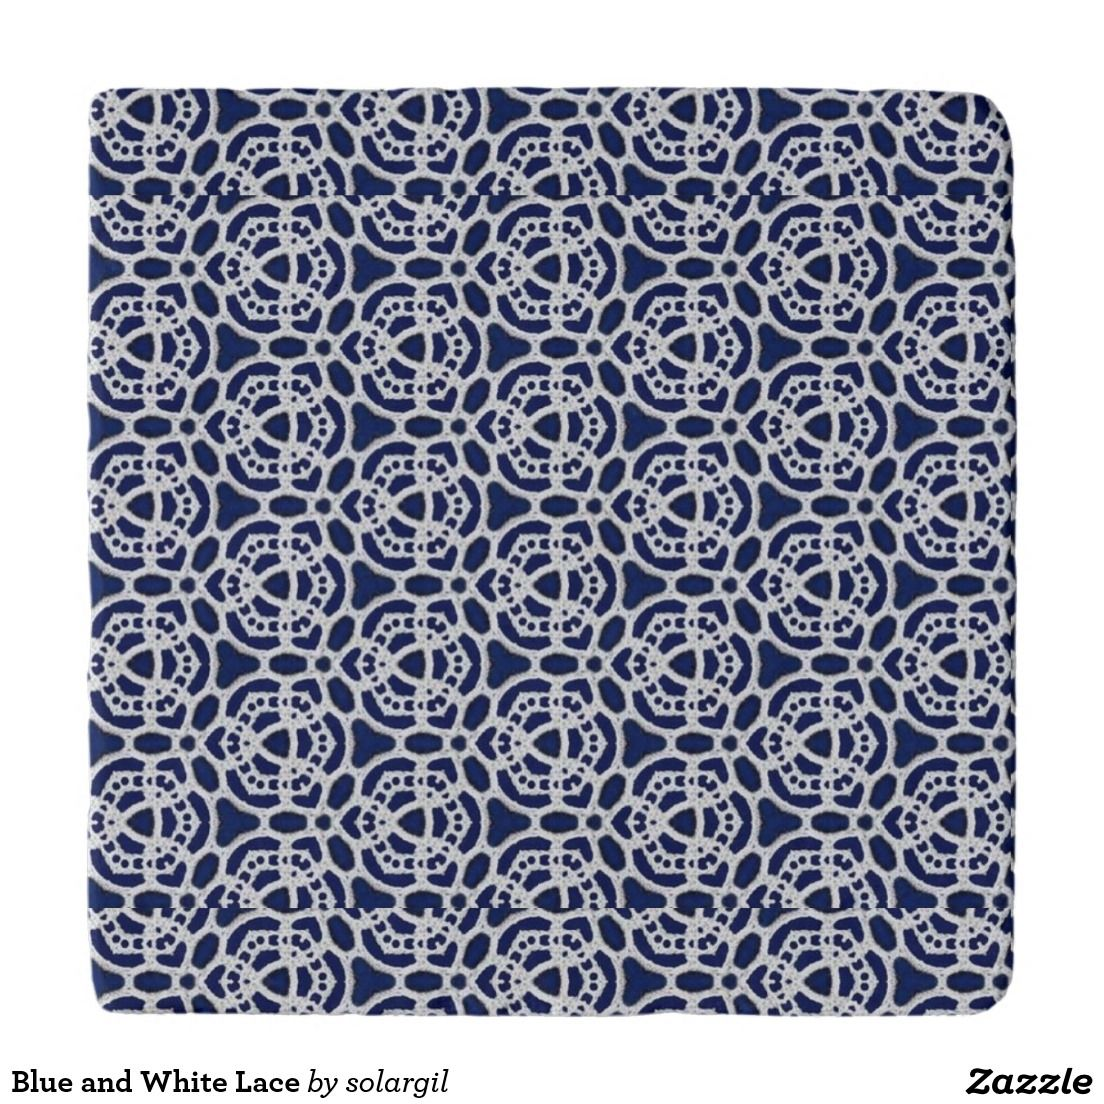 Blue and White Lace Trivets